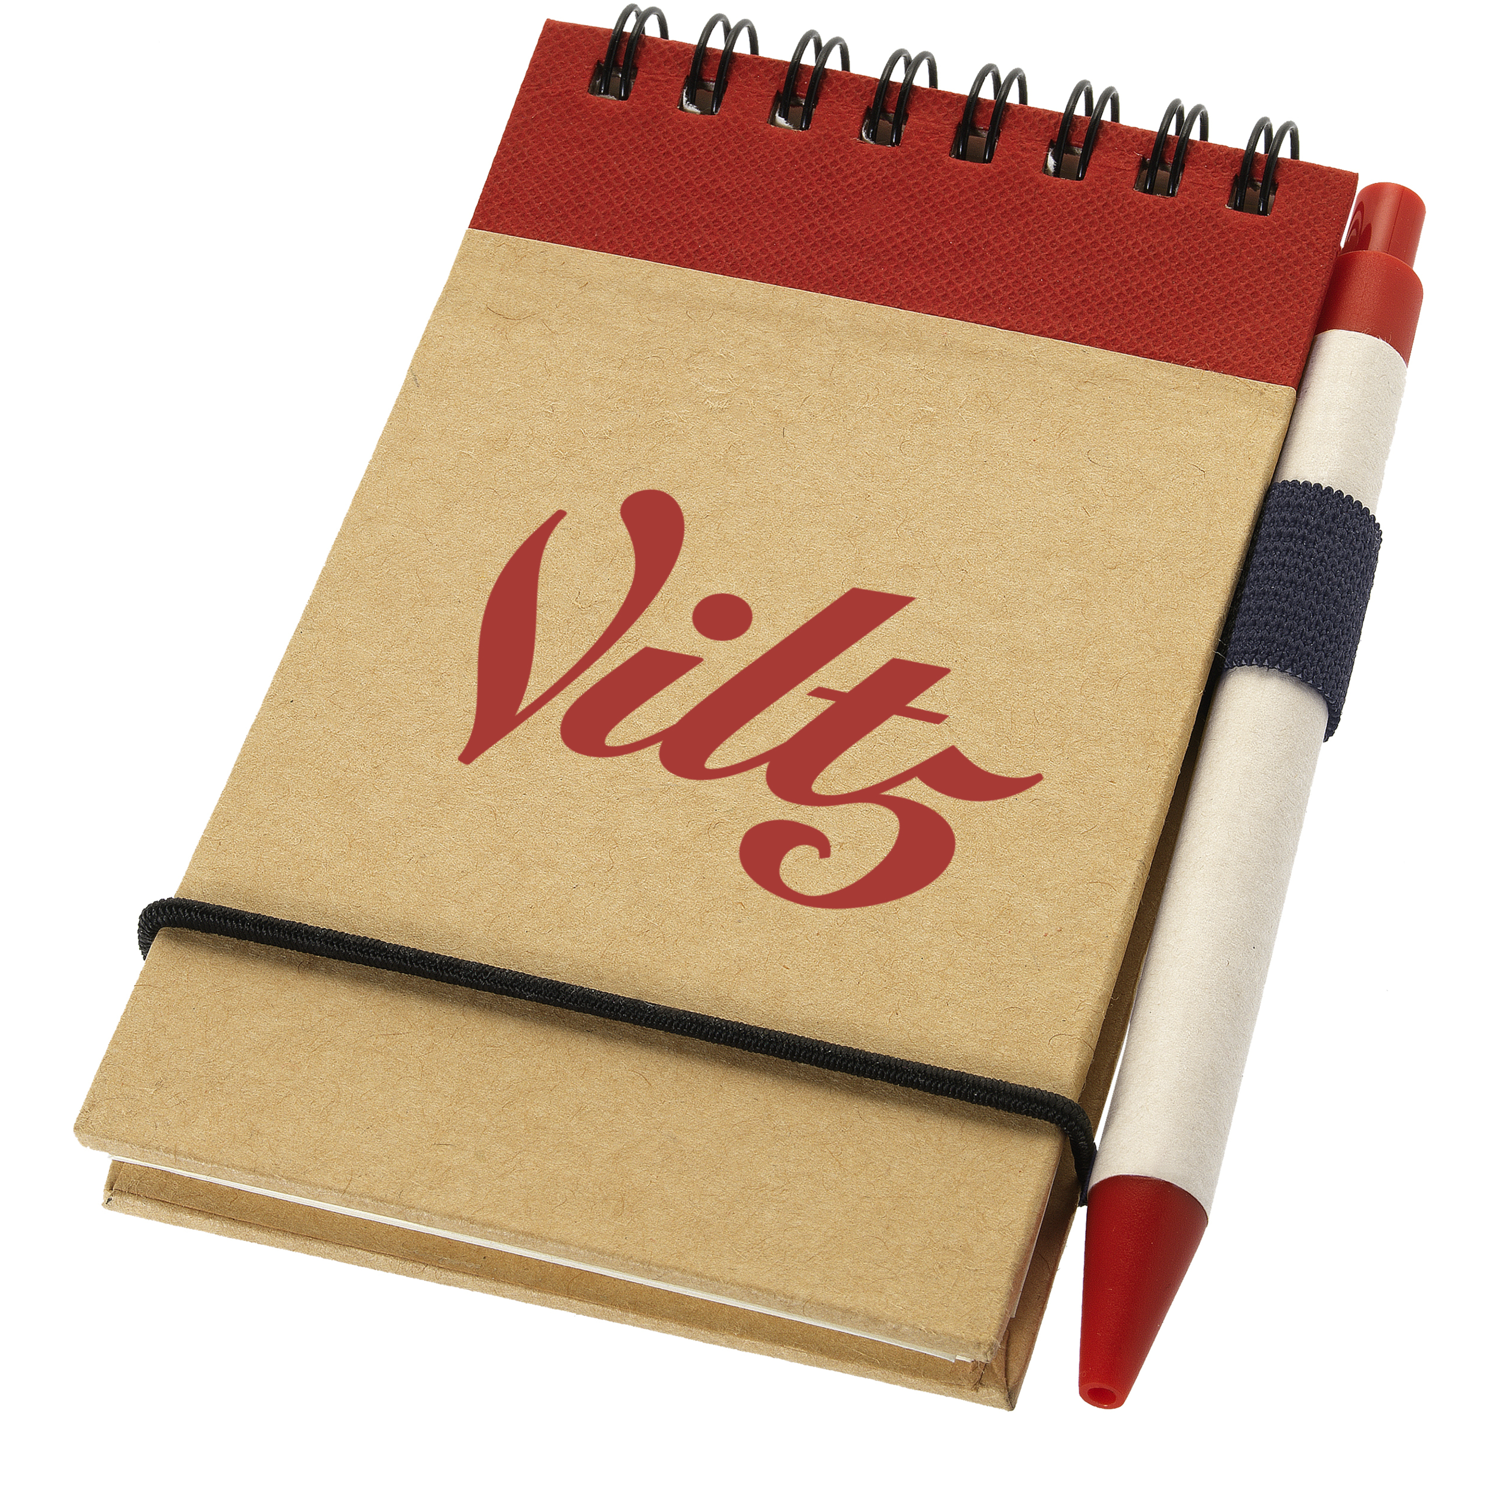 Jotter notepad with pen